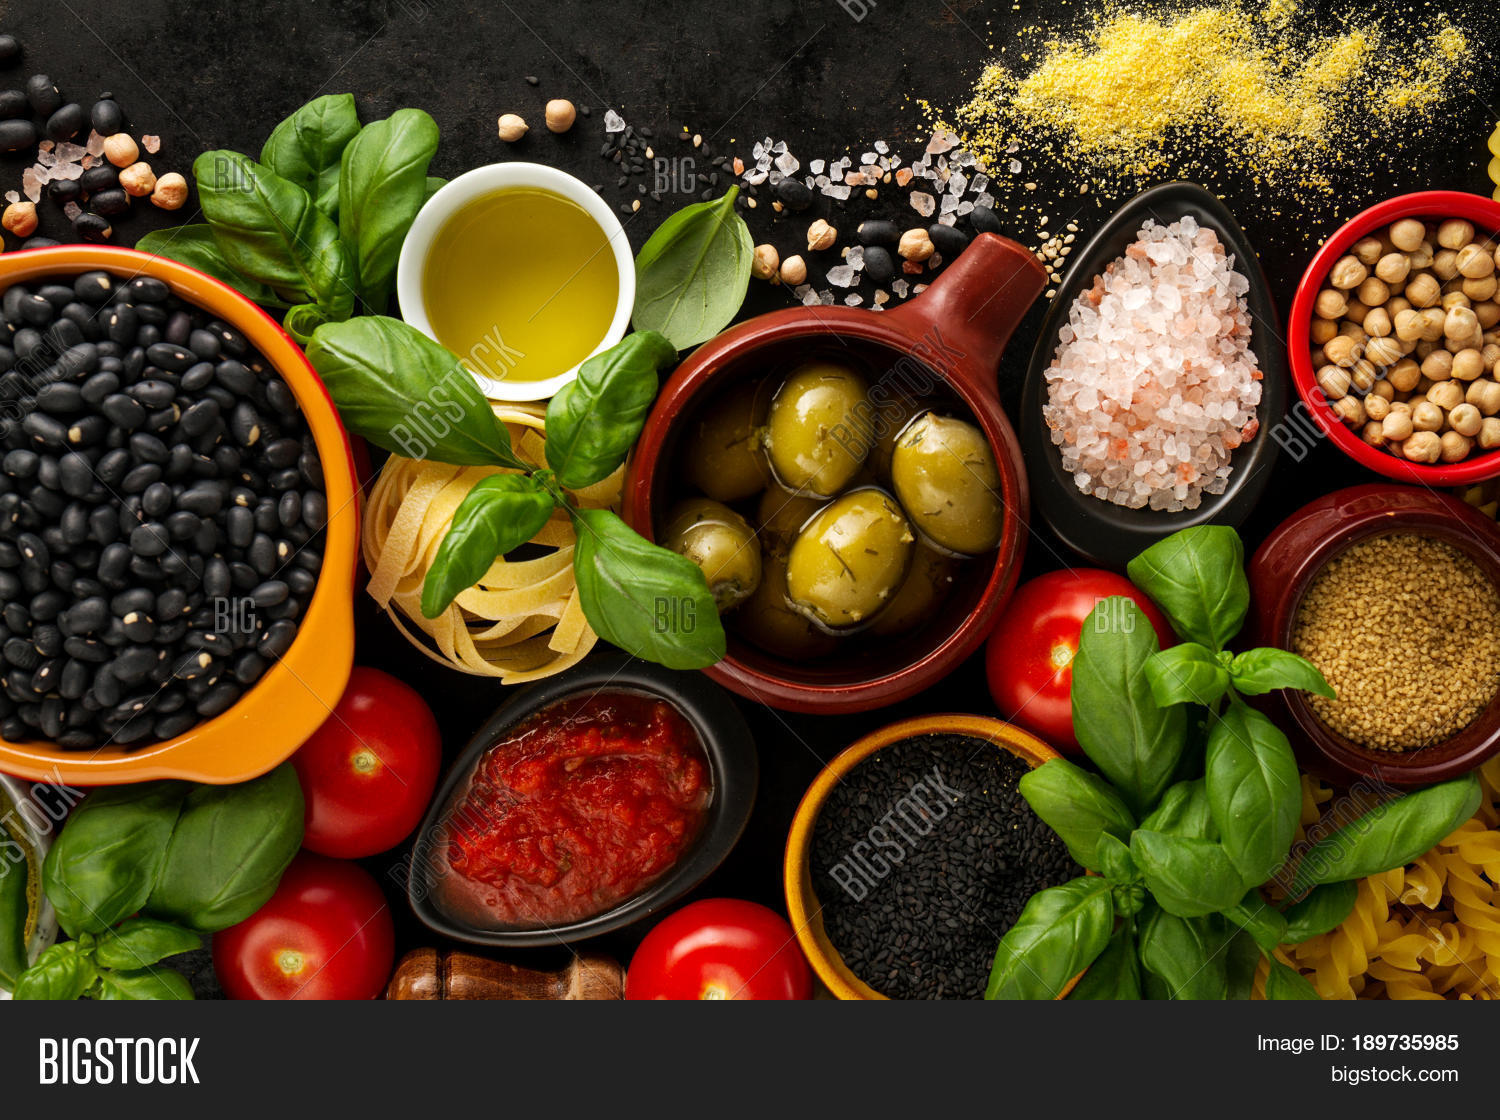 food background food image photo free trial bigstock